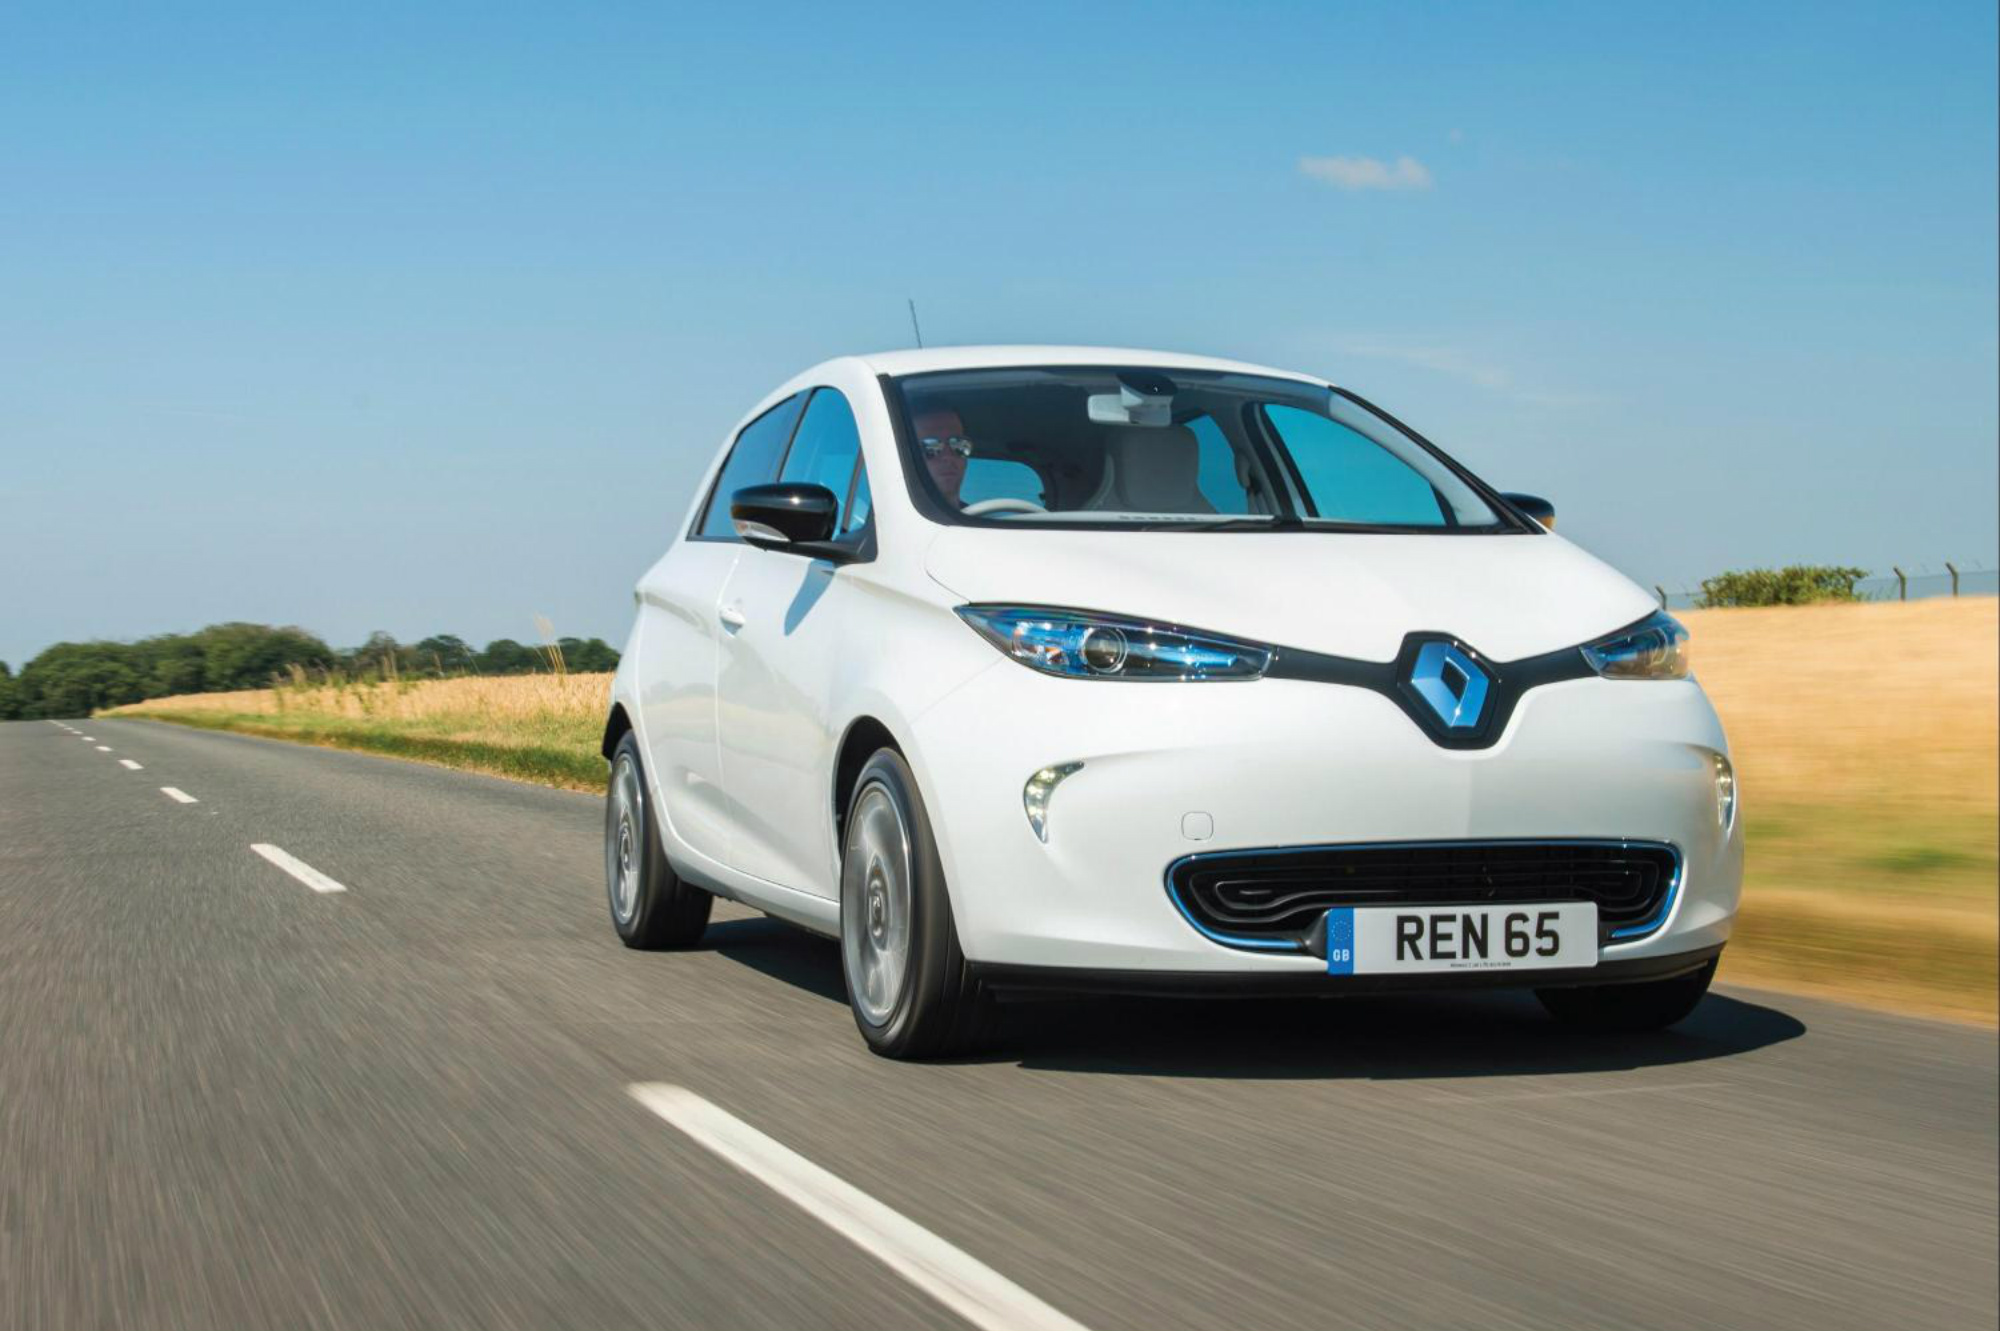 2017 renault zoe details emerge range nearly doubled. Black Bedroom Furniture Sets. Home Design Ideas